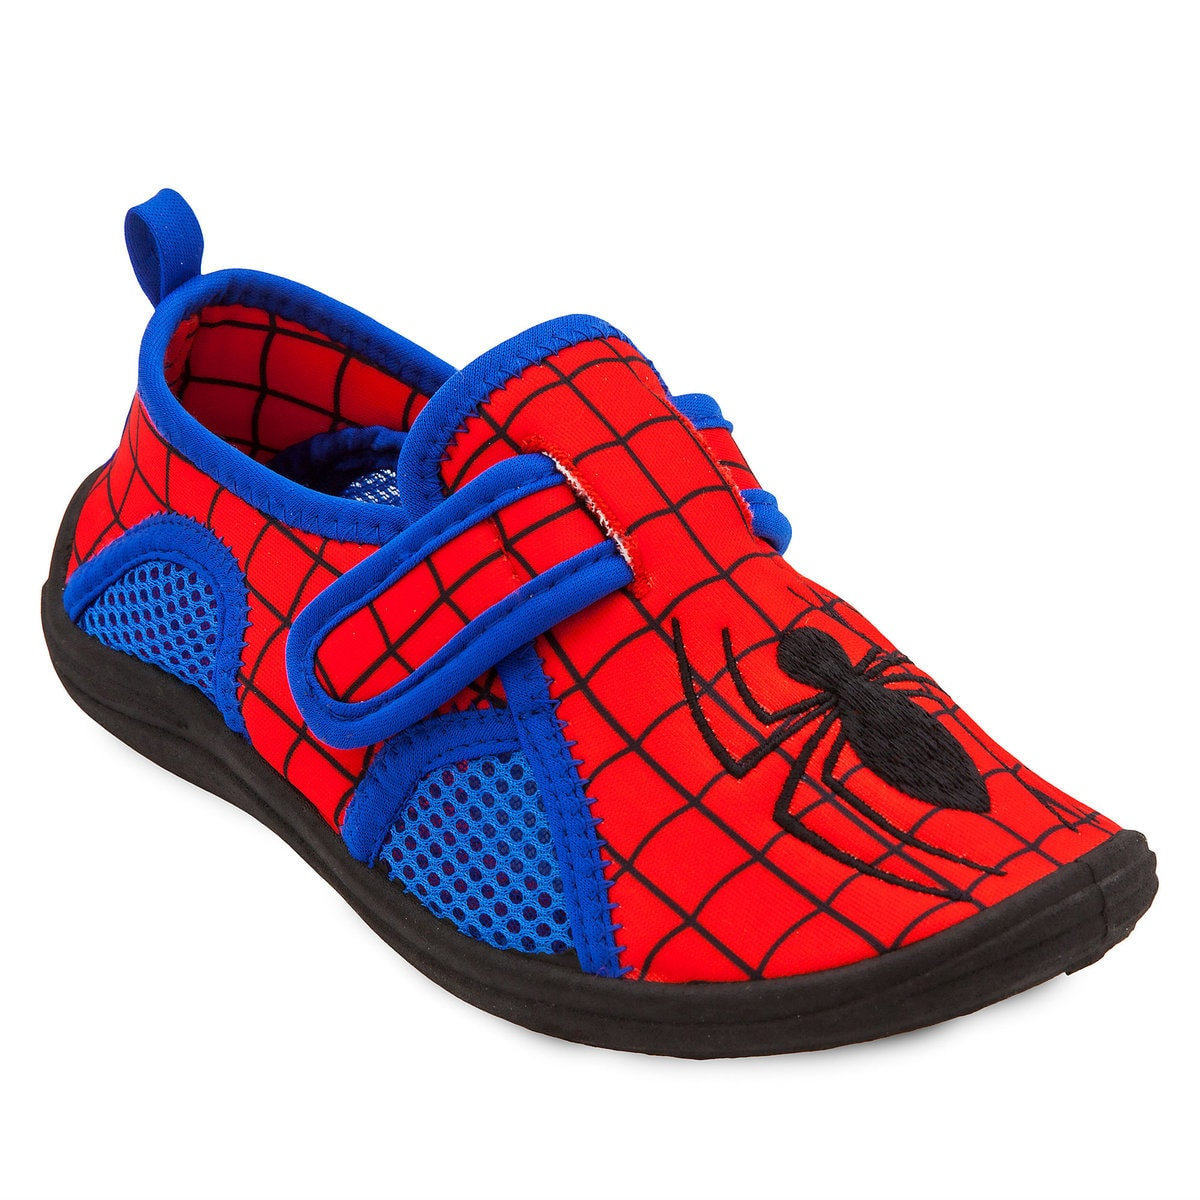 c81dba014 Product Image of Spider-Man Swim Shoes for Kids   1